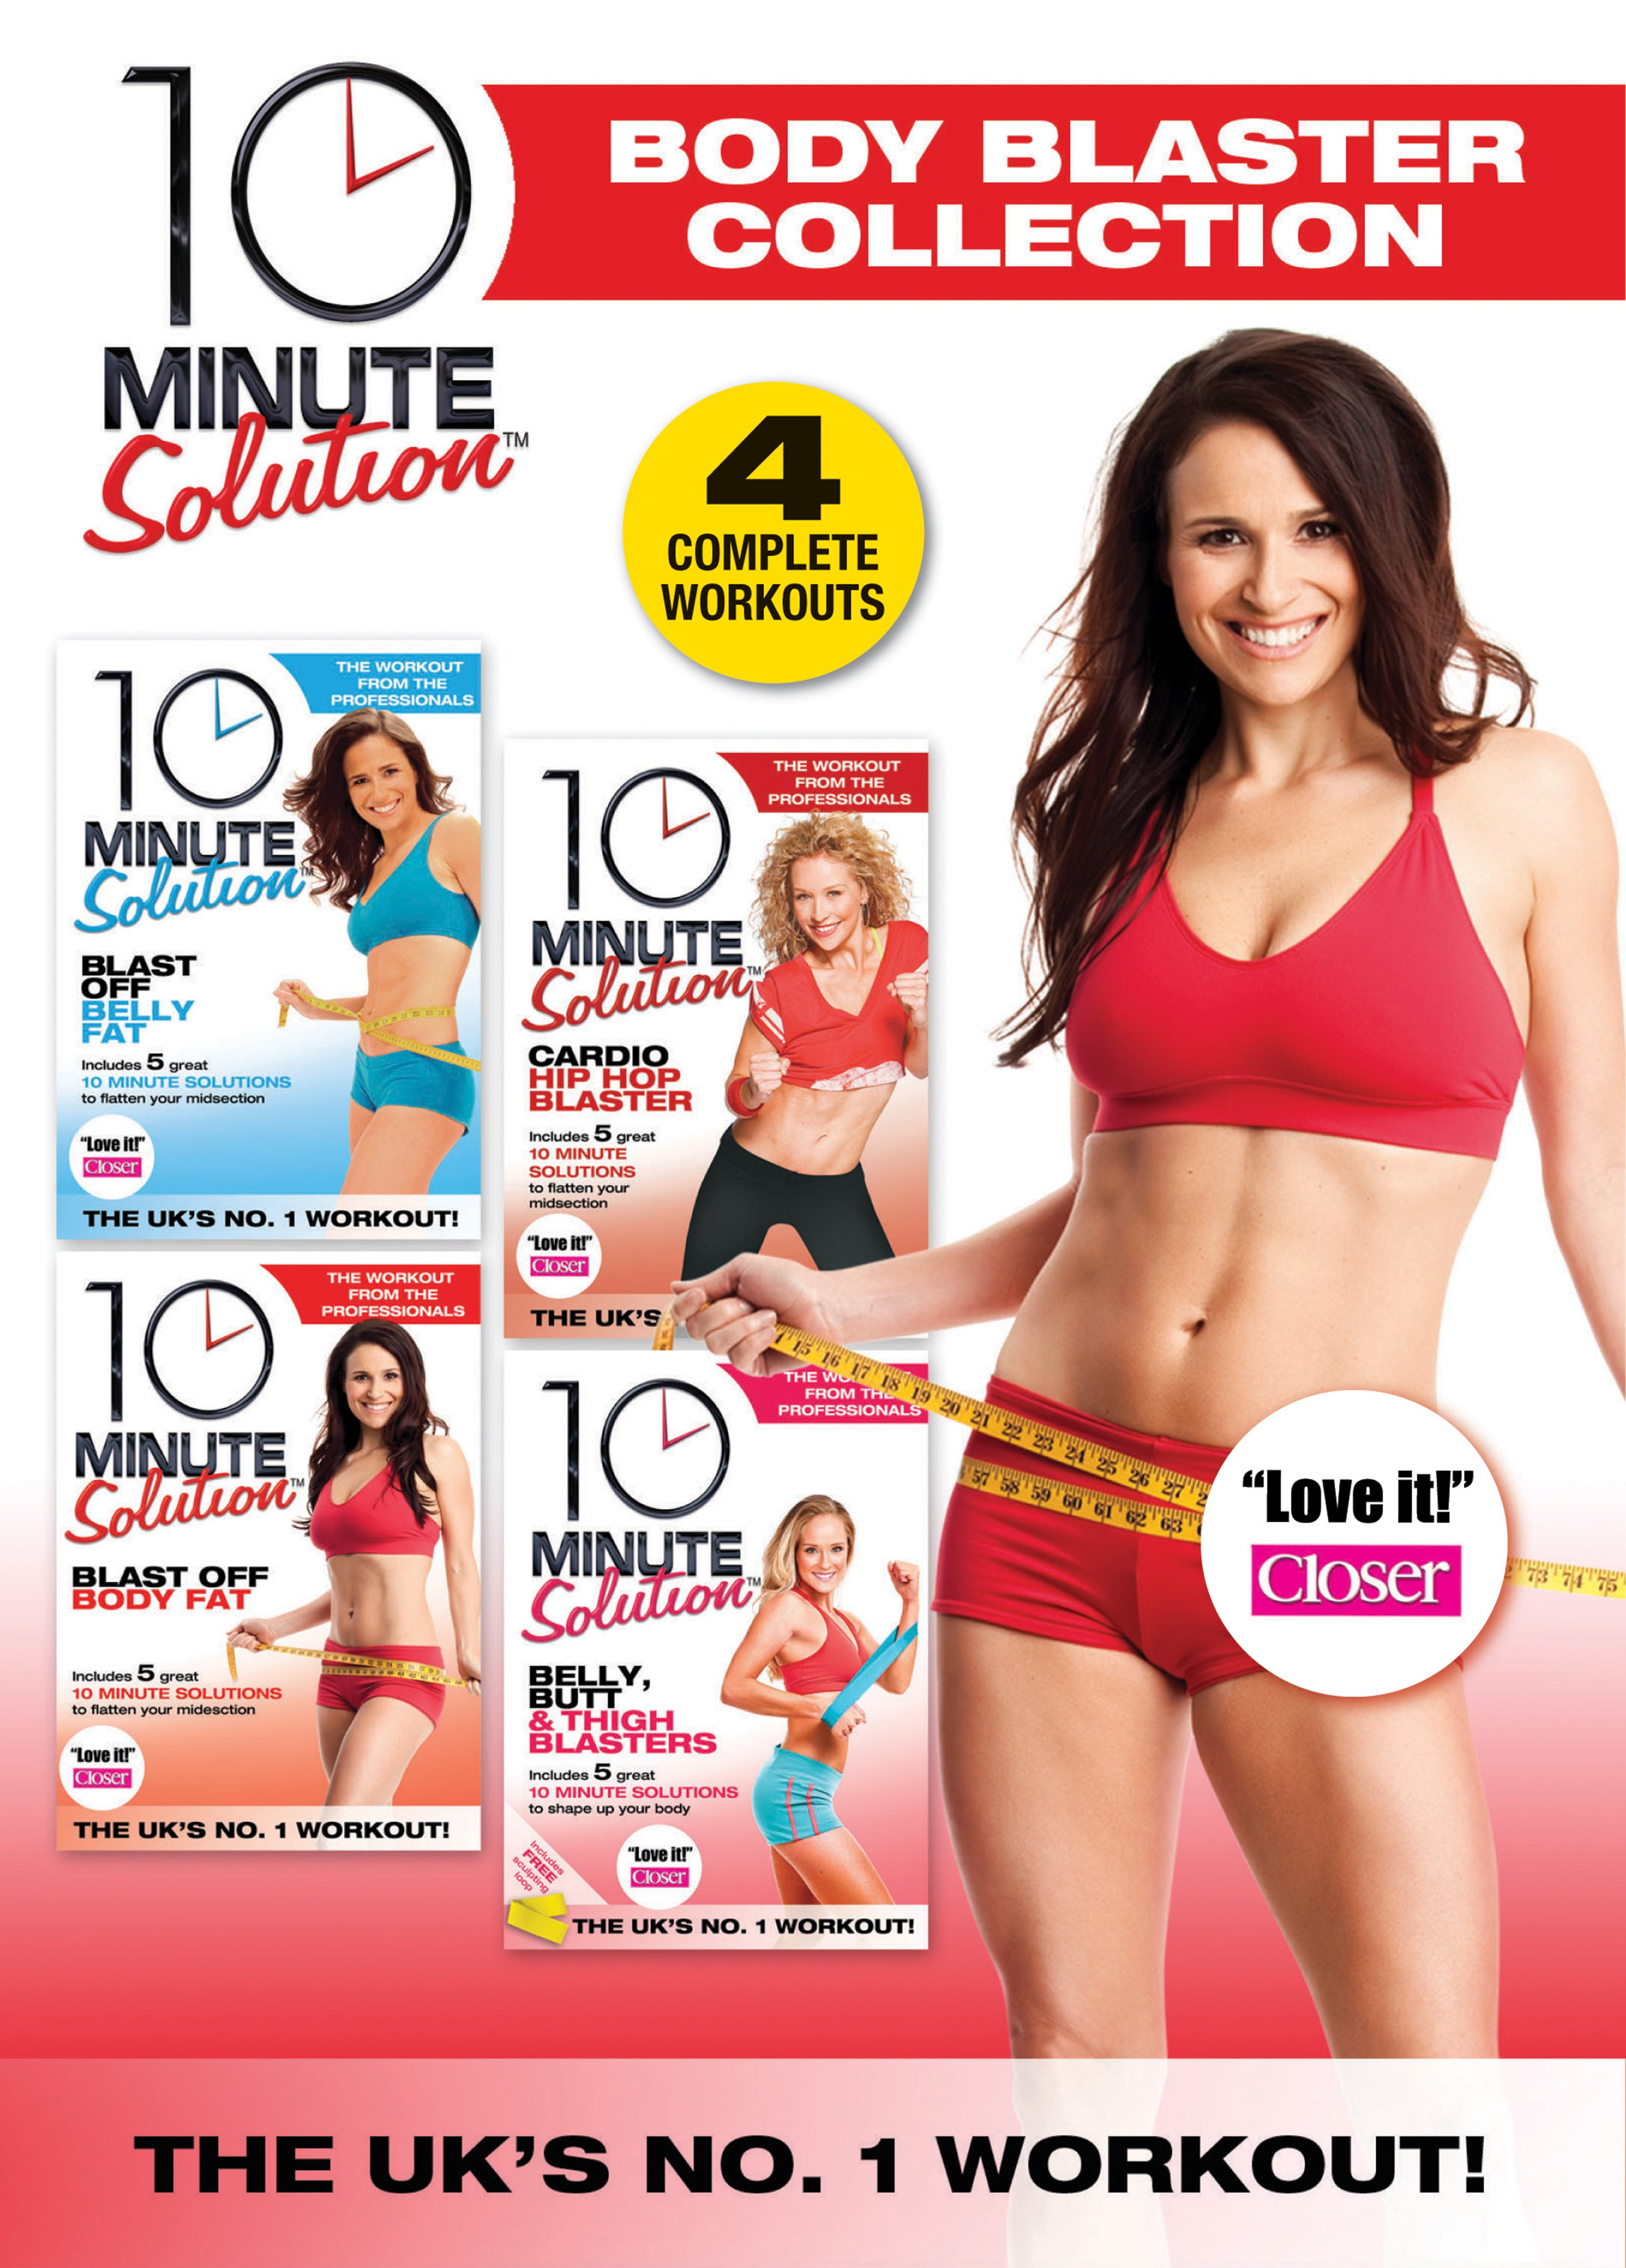 10 Minute Solution: The Body Blaster Collection - 2